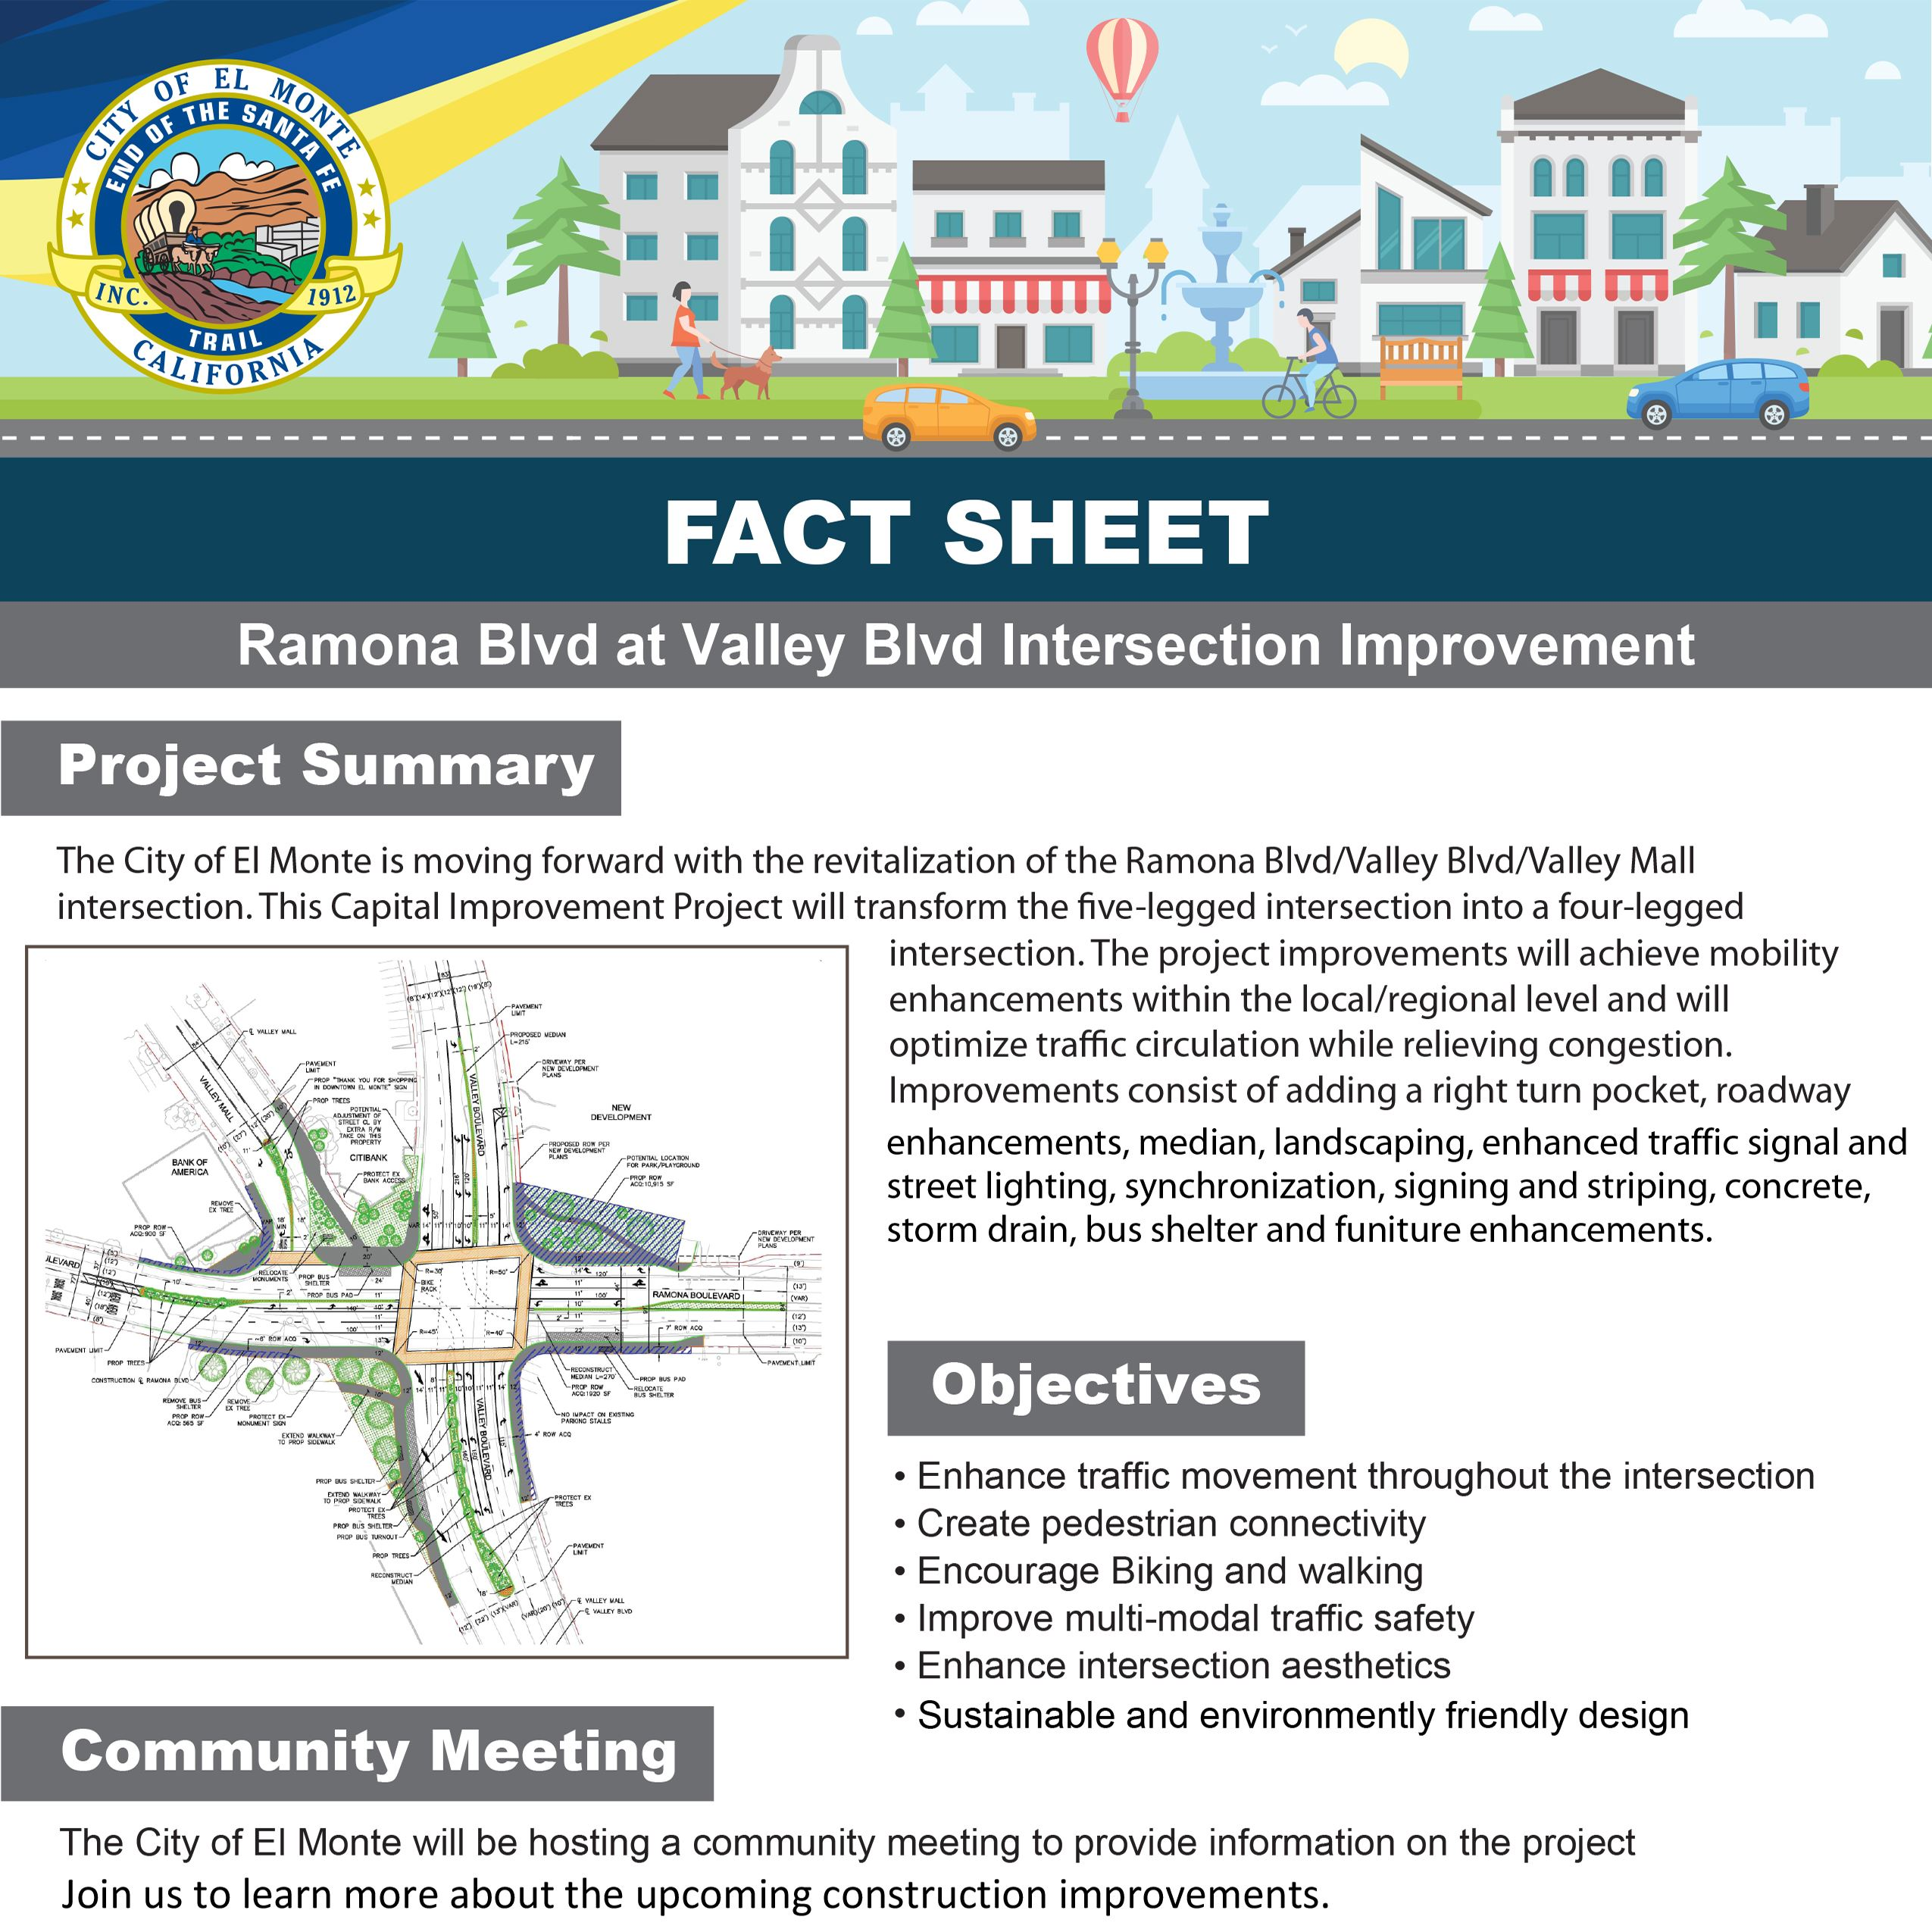 fact sheet - Ramona blvd at Valley blvd intersection improvement-1Web